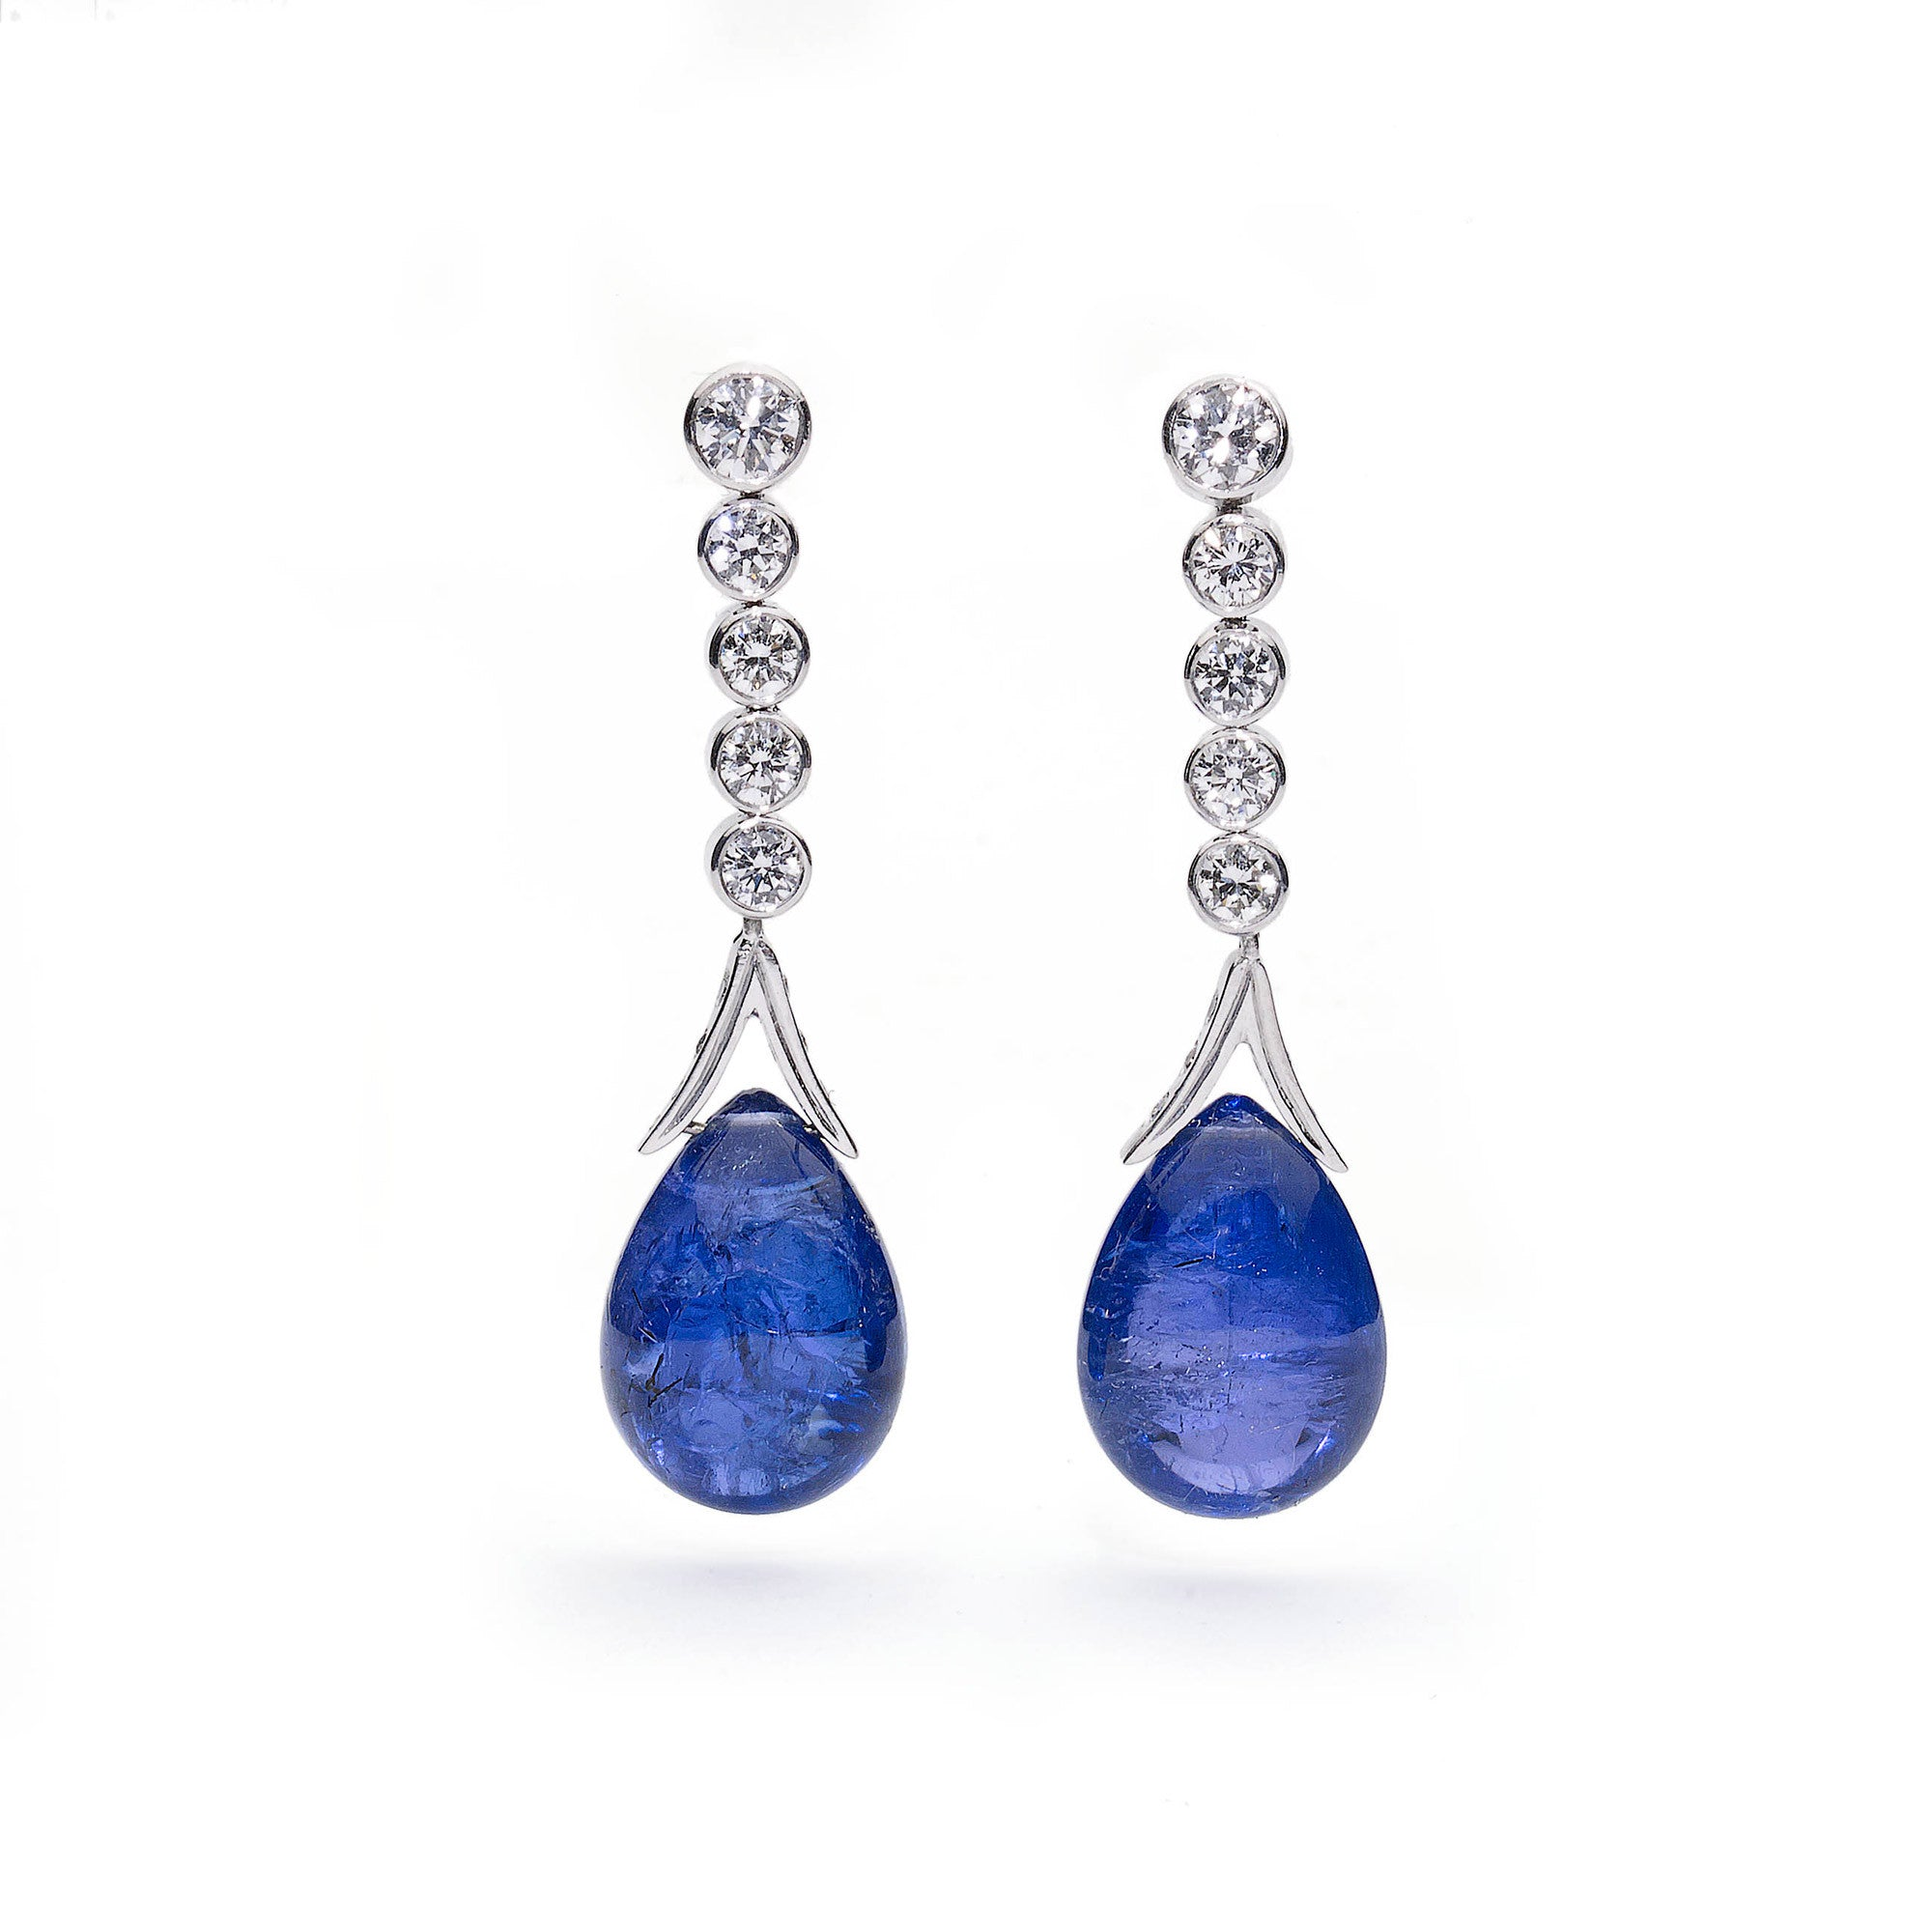 diamond cei tanzanite earrings rose gold sharing p sidebar diamondtanzanite addthis